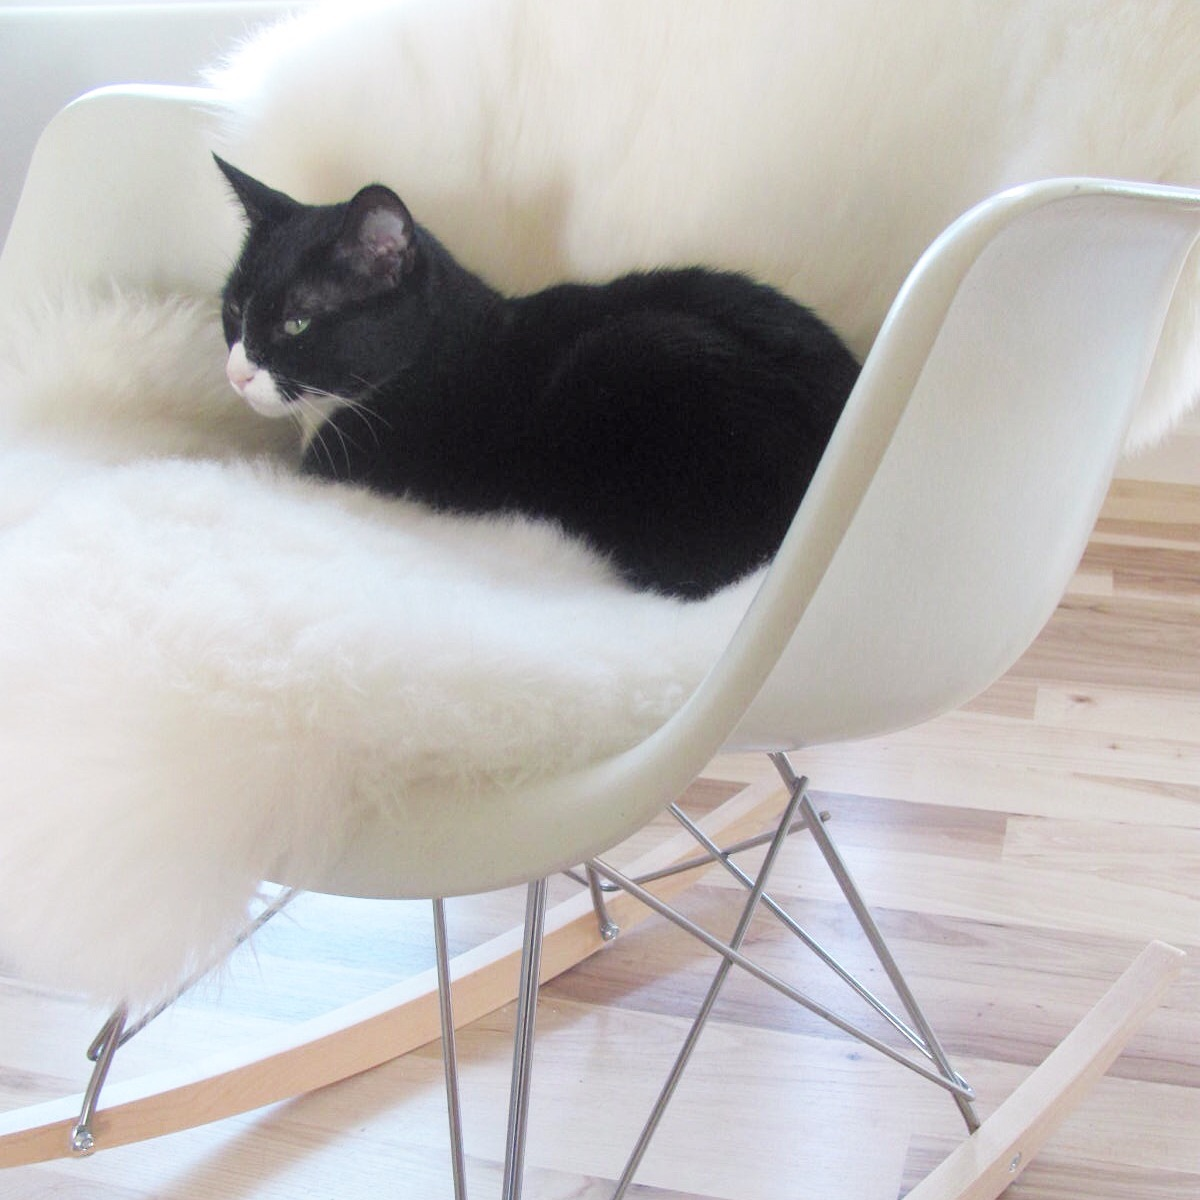 Miles lounging in style on sheepskin.